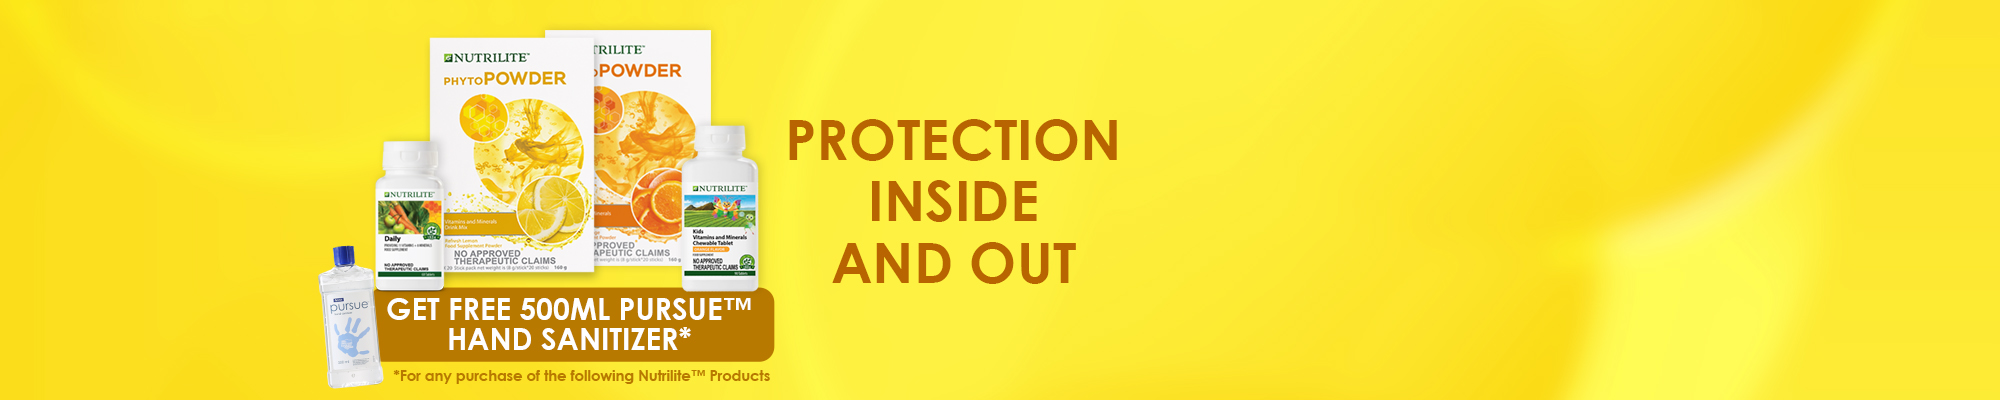 Protection Inside and Out - Hybris Desktop.jpg